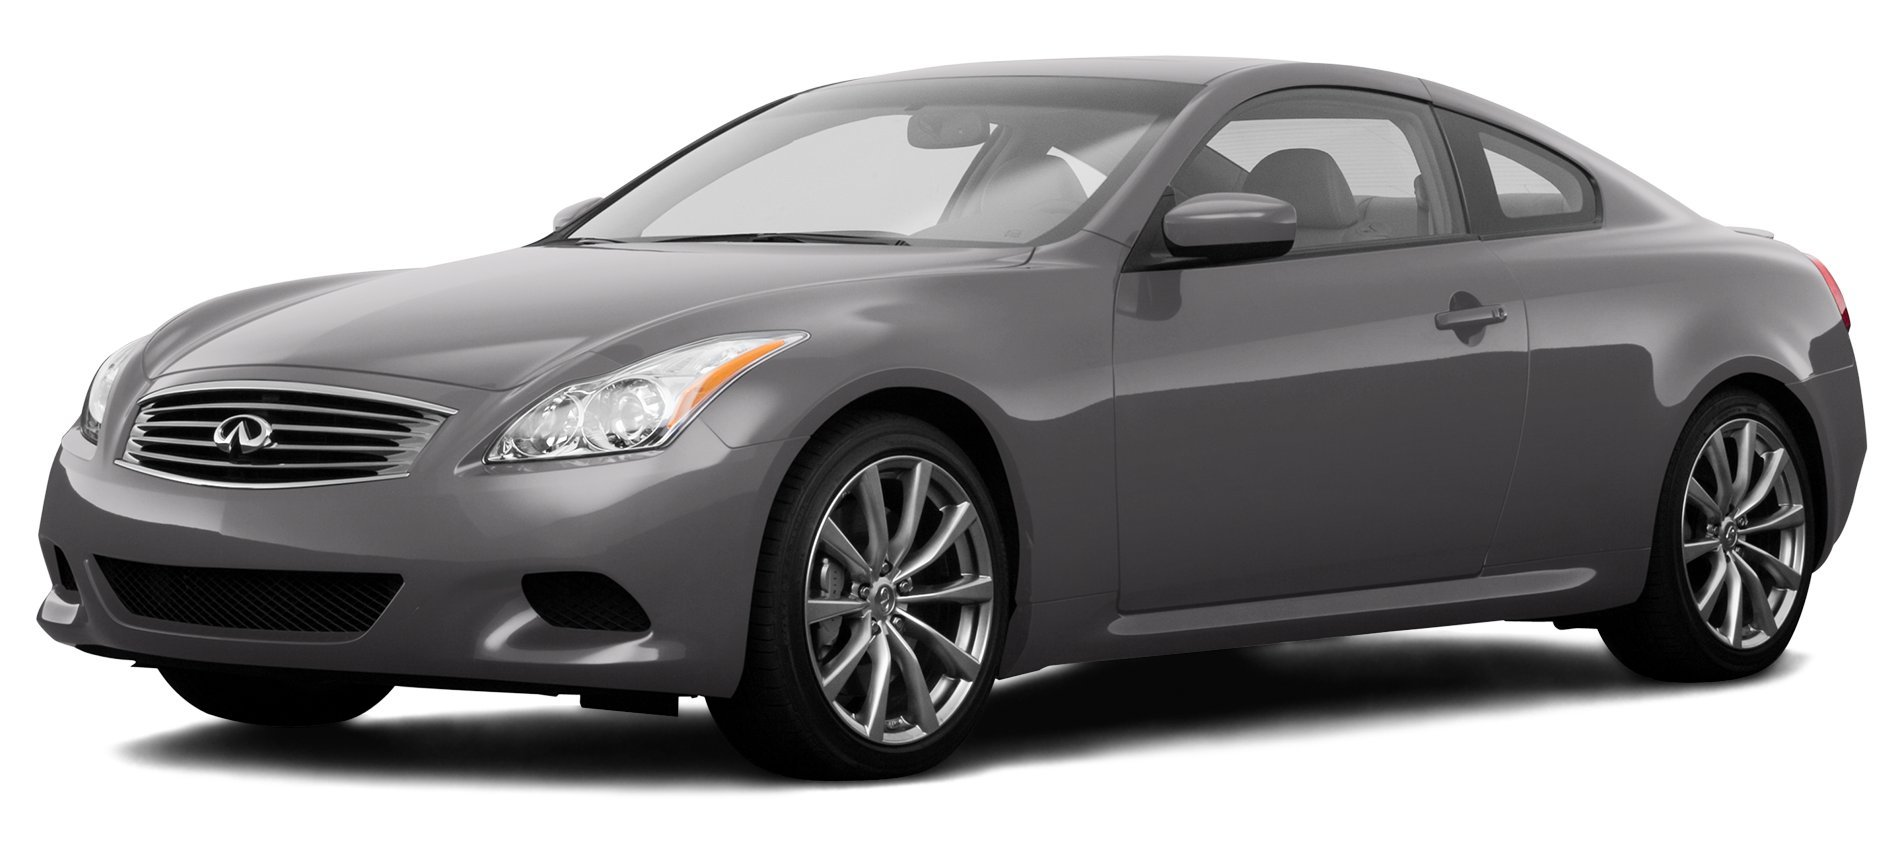 Amazon 2008 infiniti g37 reviews images and specs vehicles 2008 infiniti g37 base 2 door vanachro Choice Image